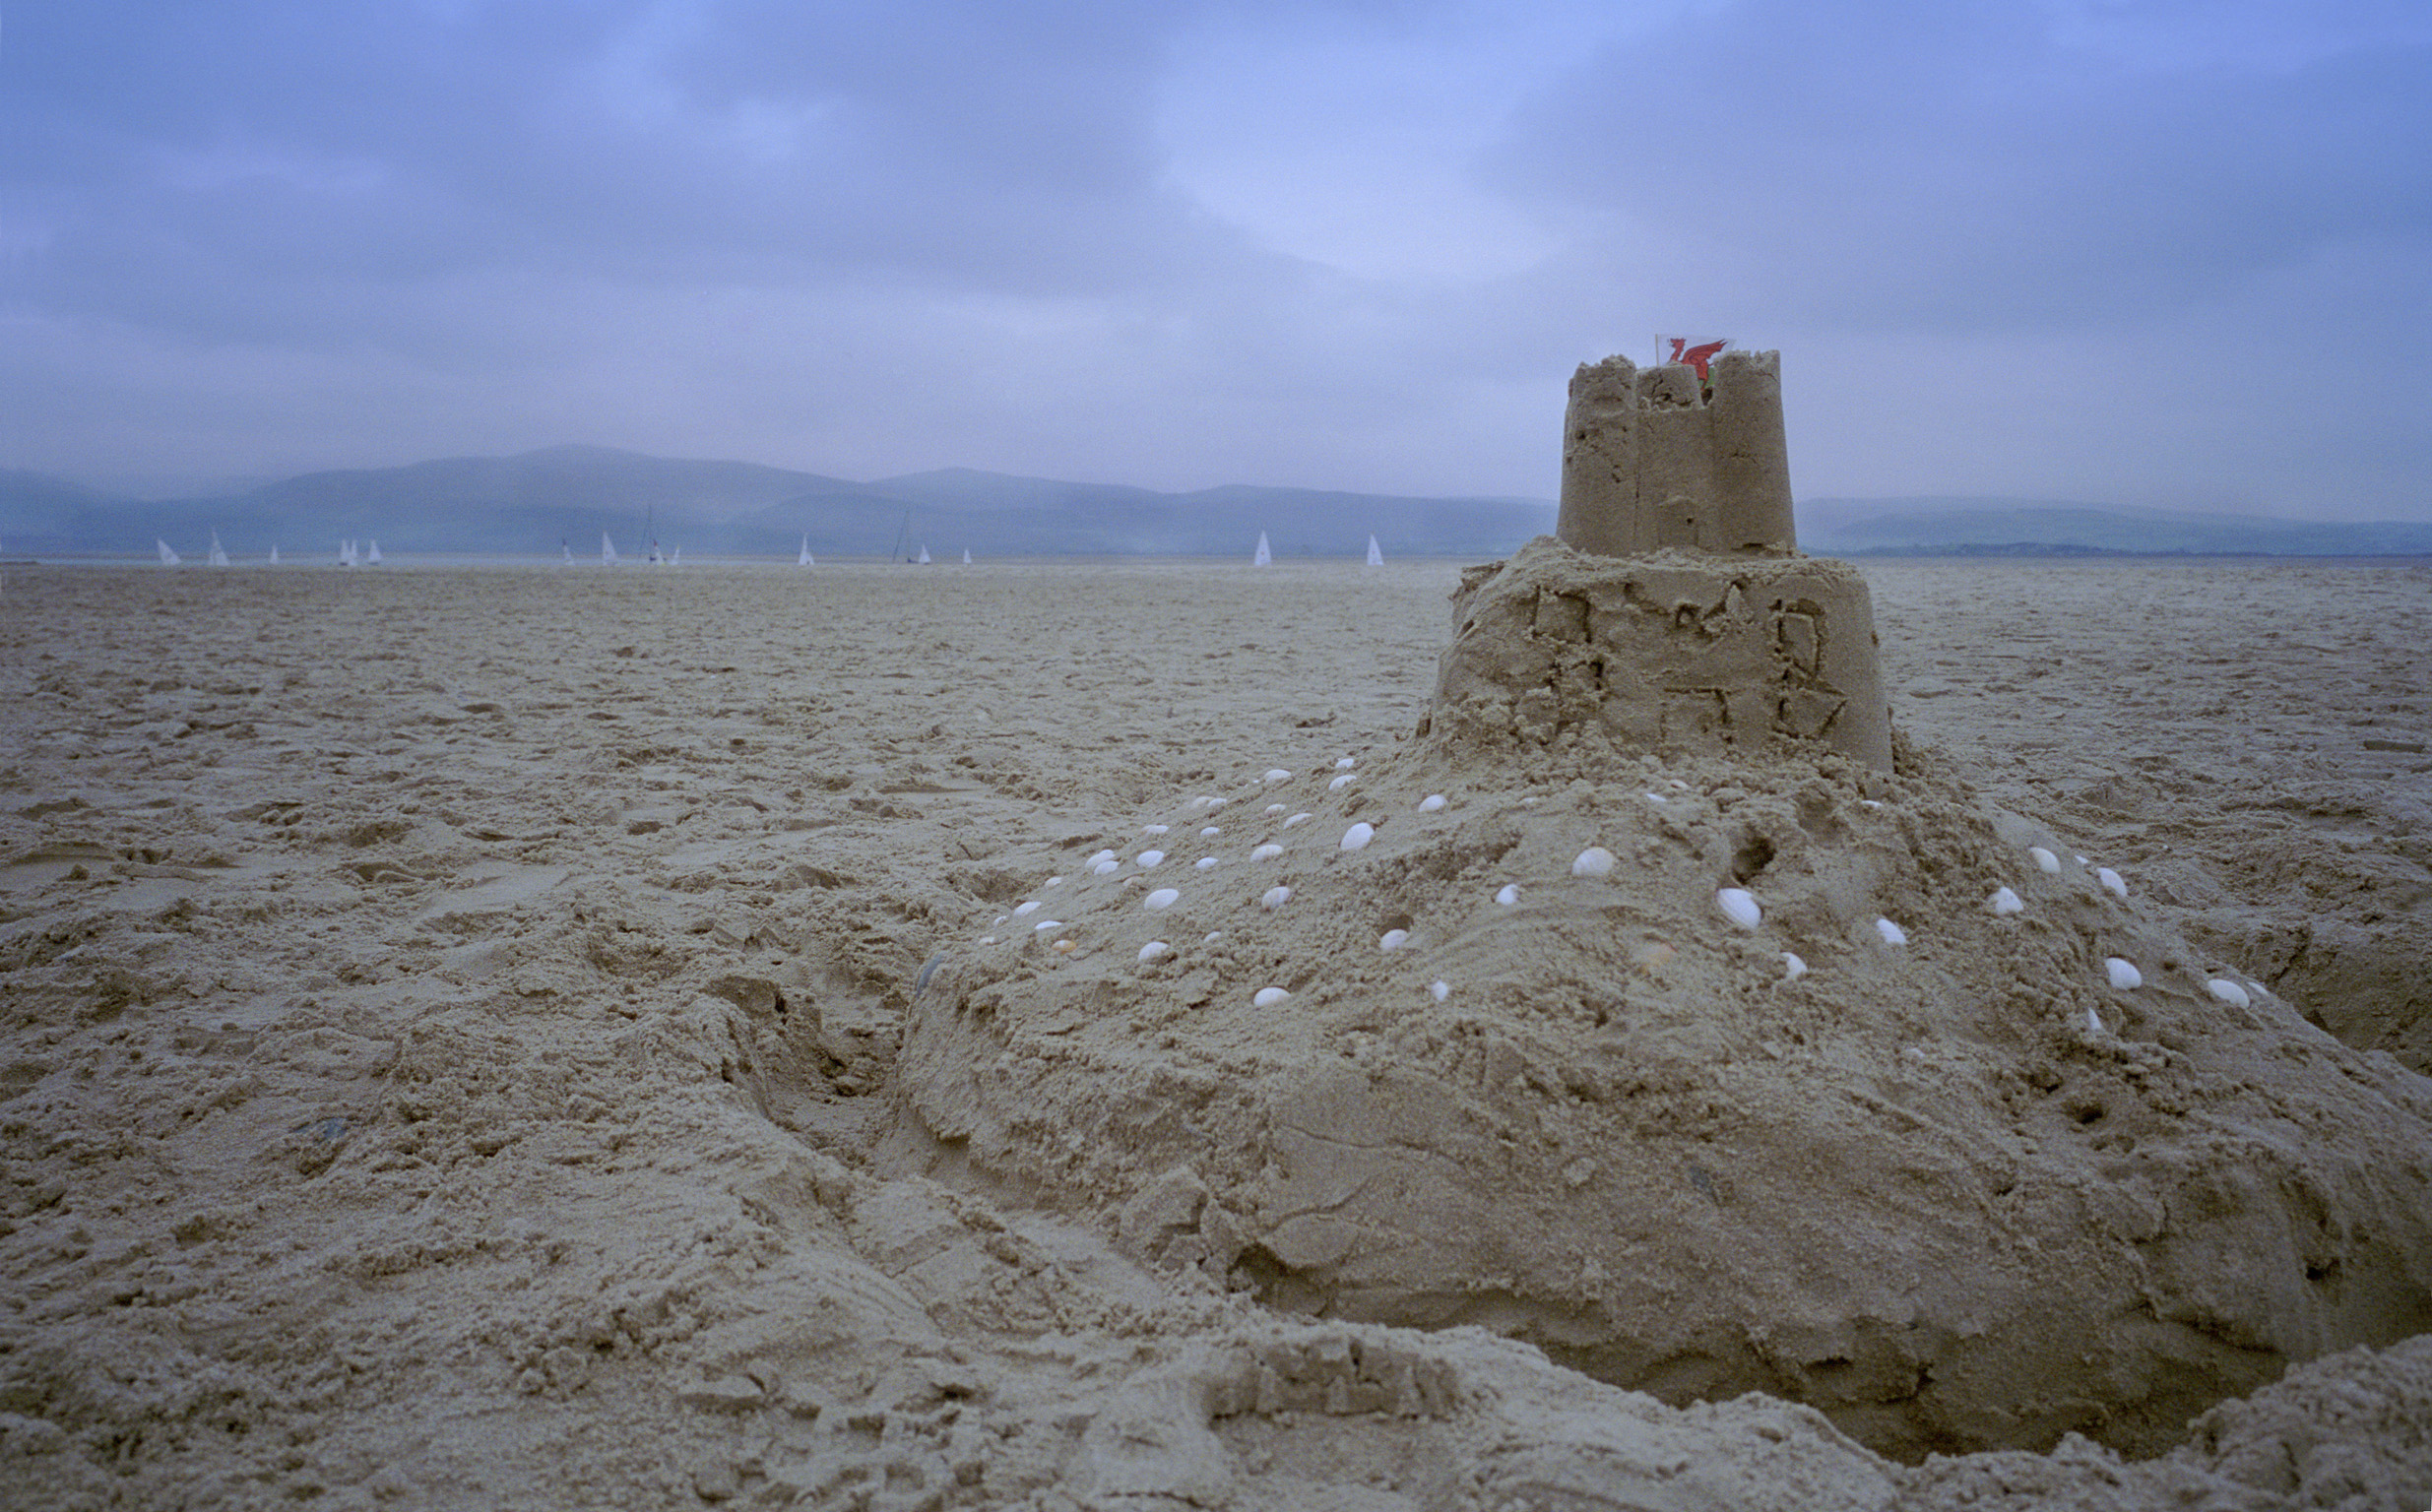 Close Up of Sand Castle on Overcast Beach